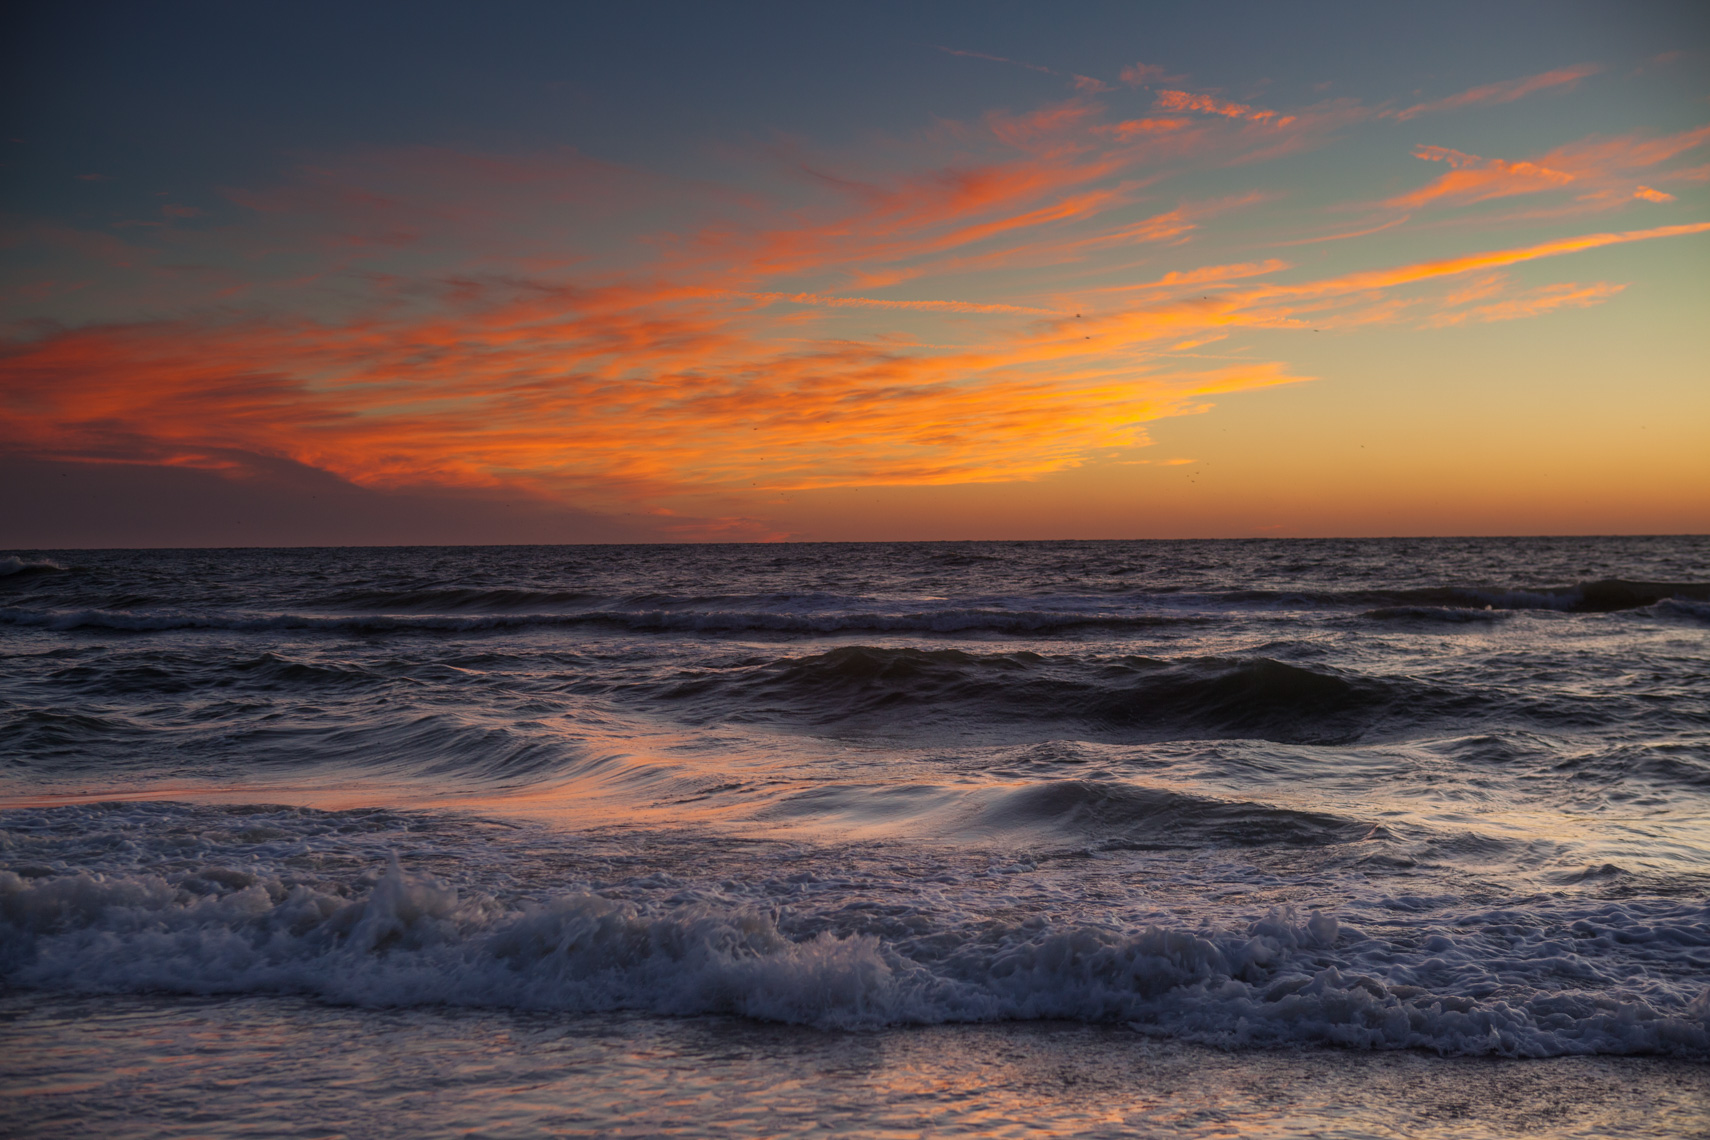 beach sunset, shot by Steven P. Widoff, editorial, lifestyle and advertising commercial photographer in Tampa, Florida.